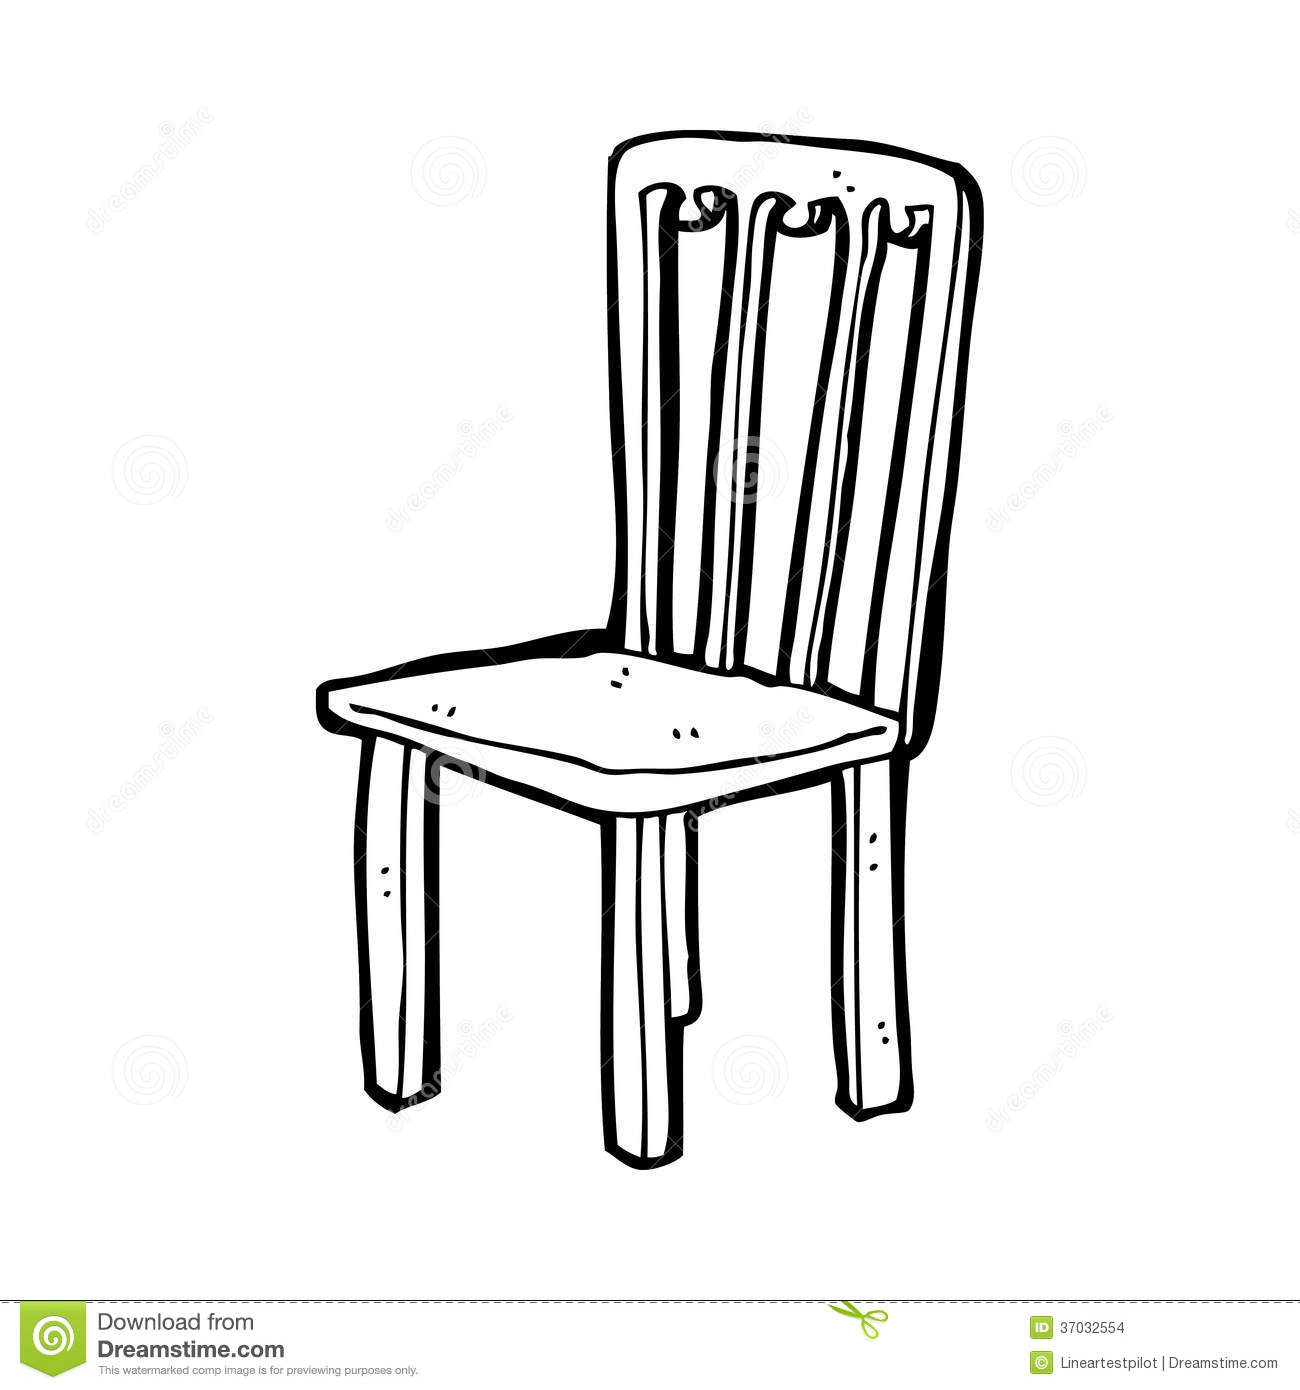 Table with Vase and Chairs clipart. Free download transparent .PNG |  Creazilla